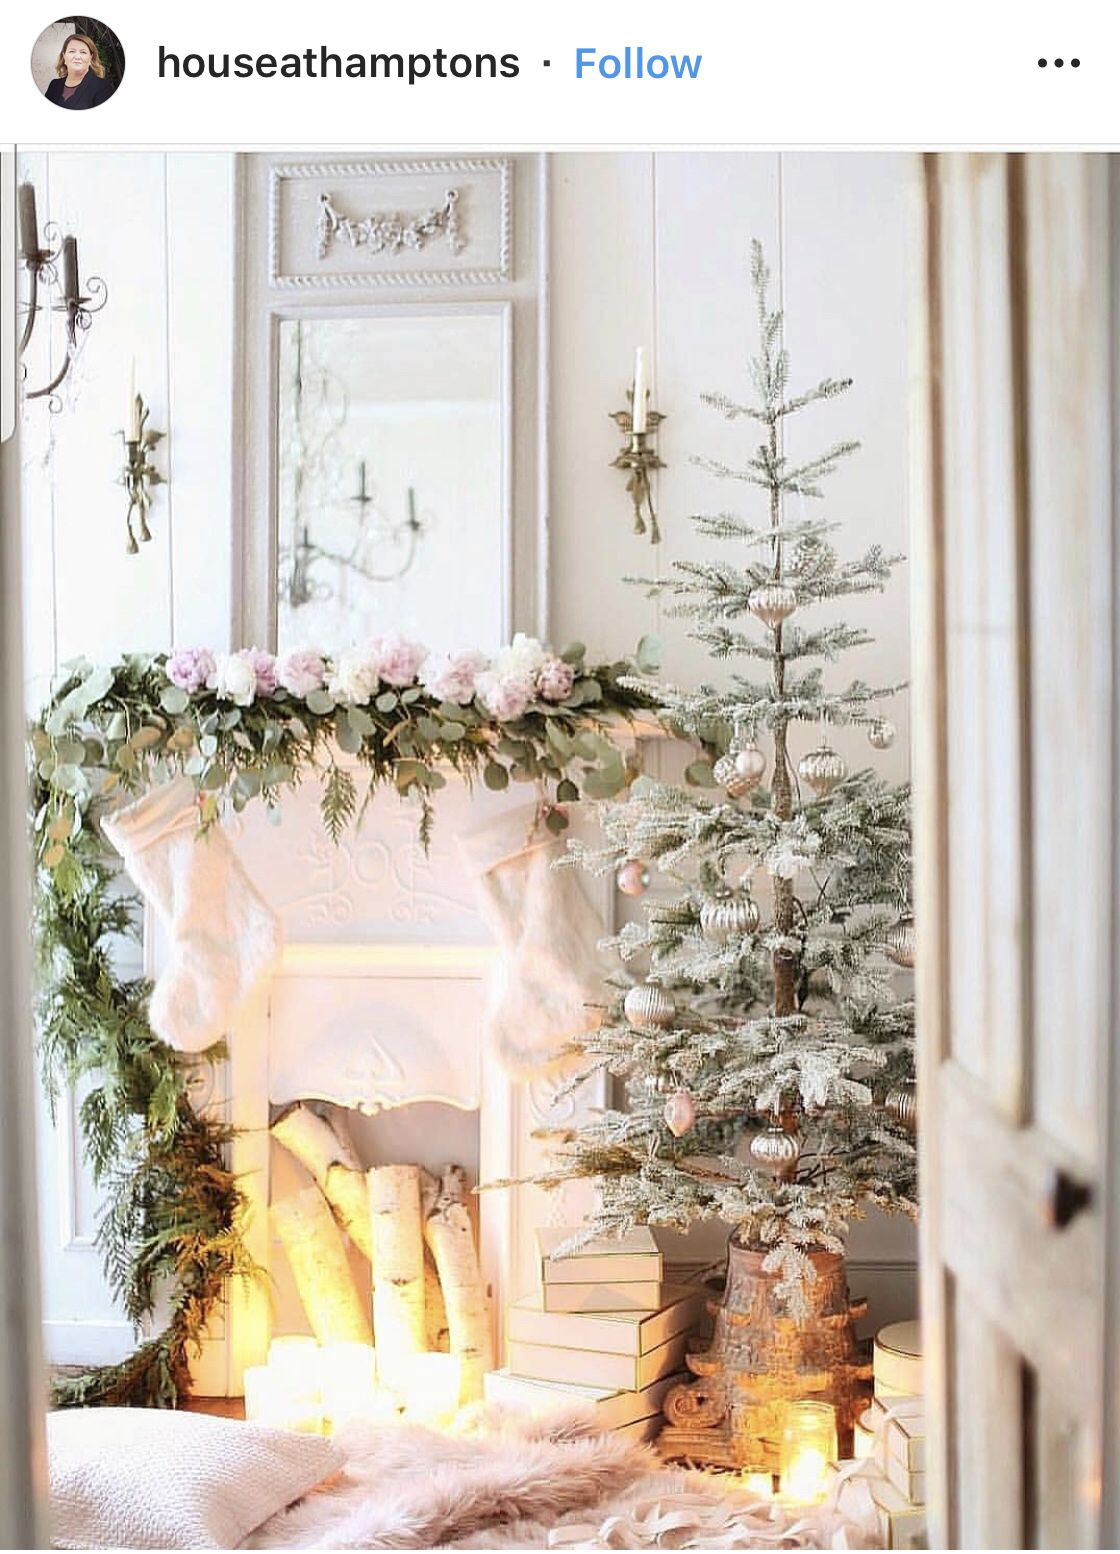 Pin by Smiling Heart Cottage on Cozy for the Holidays | Pinterest ...